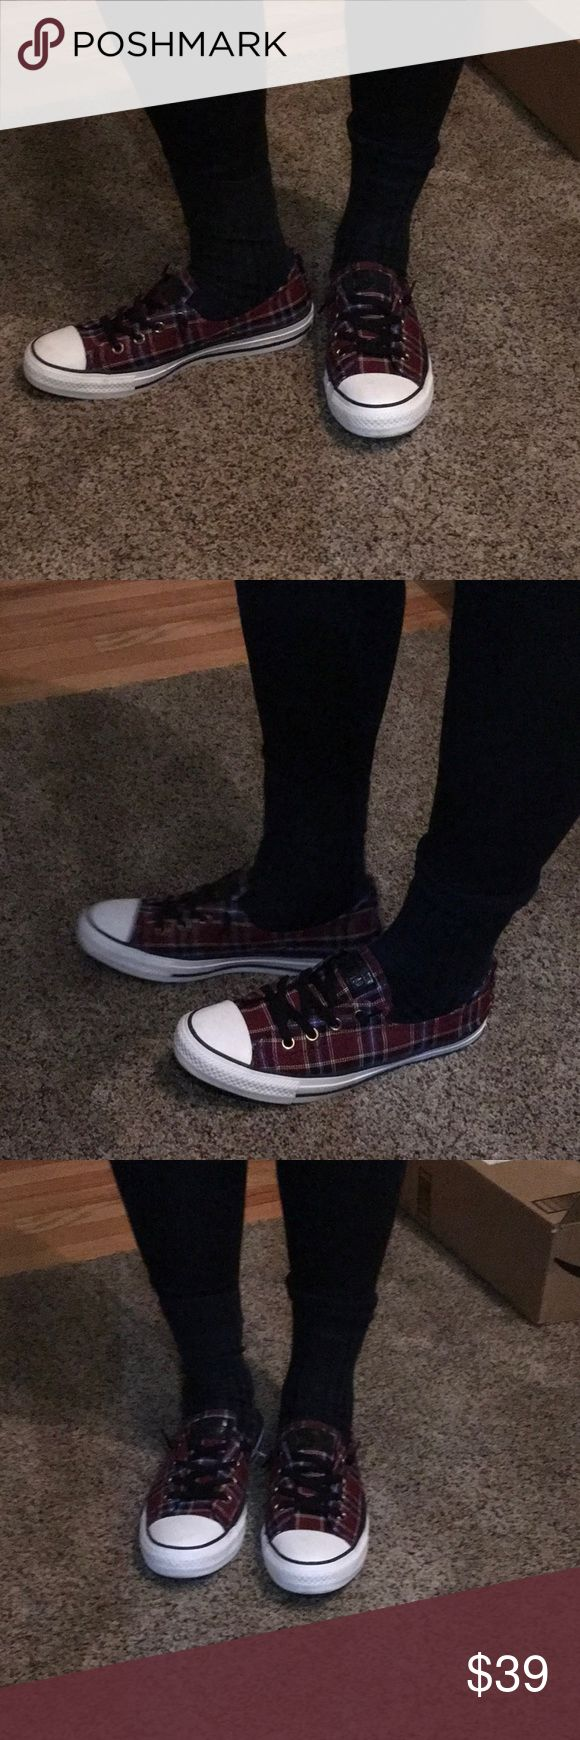 Red and black Converse plaid sneakers NWOB Red and black Converse plaid sneakers. NWOB. never worn. Size 7.5 men; 9 women. Converse Shoes Sneakers